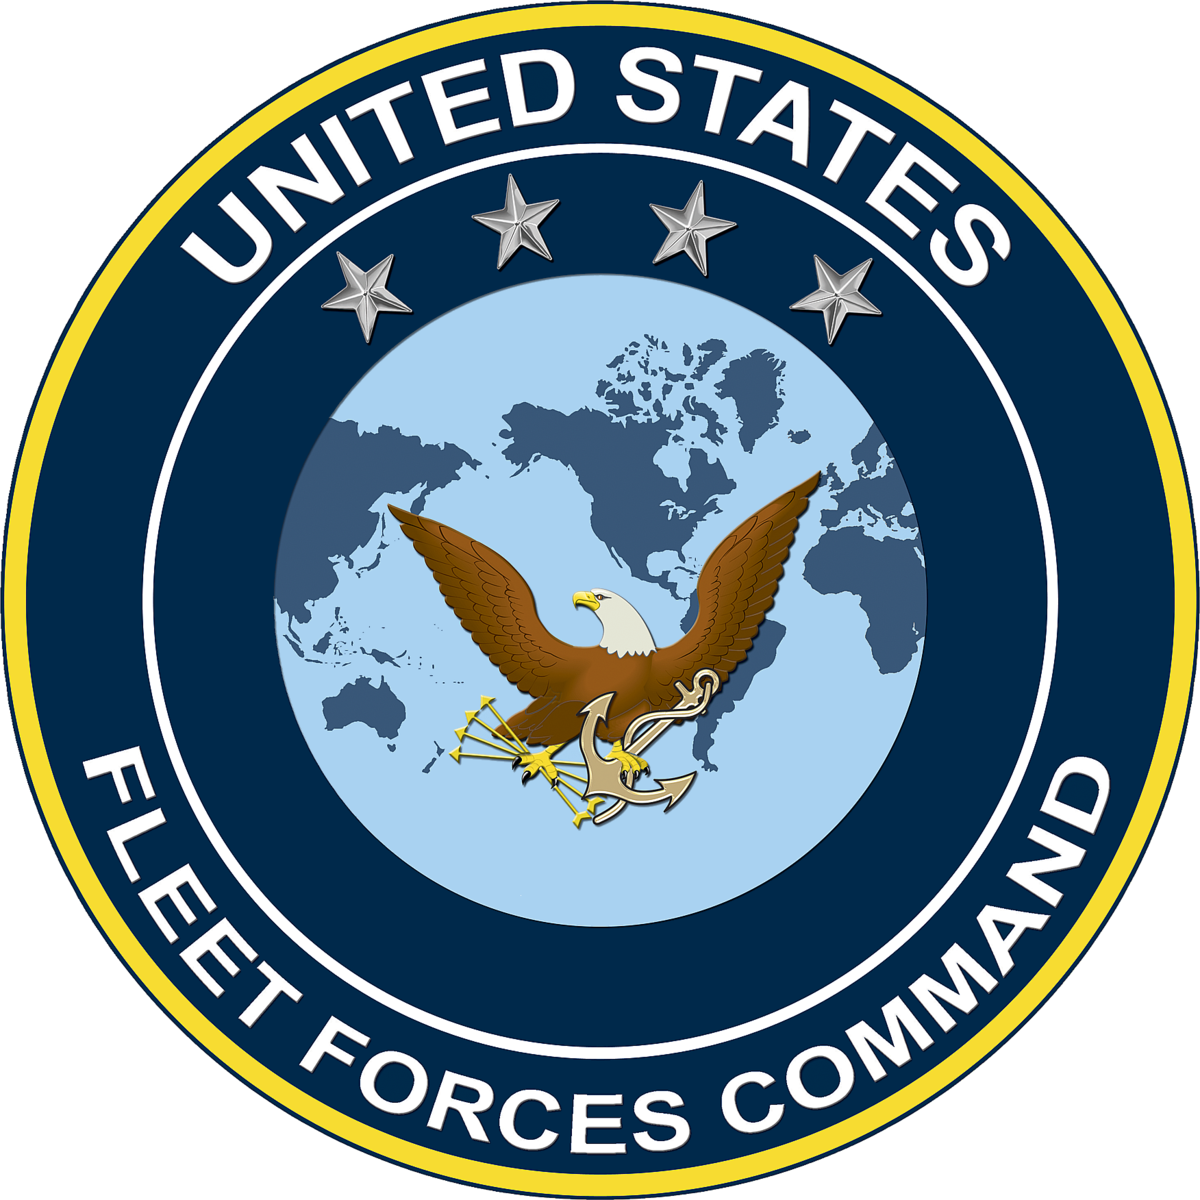 United States Fleet Forces Command - Wikipedia